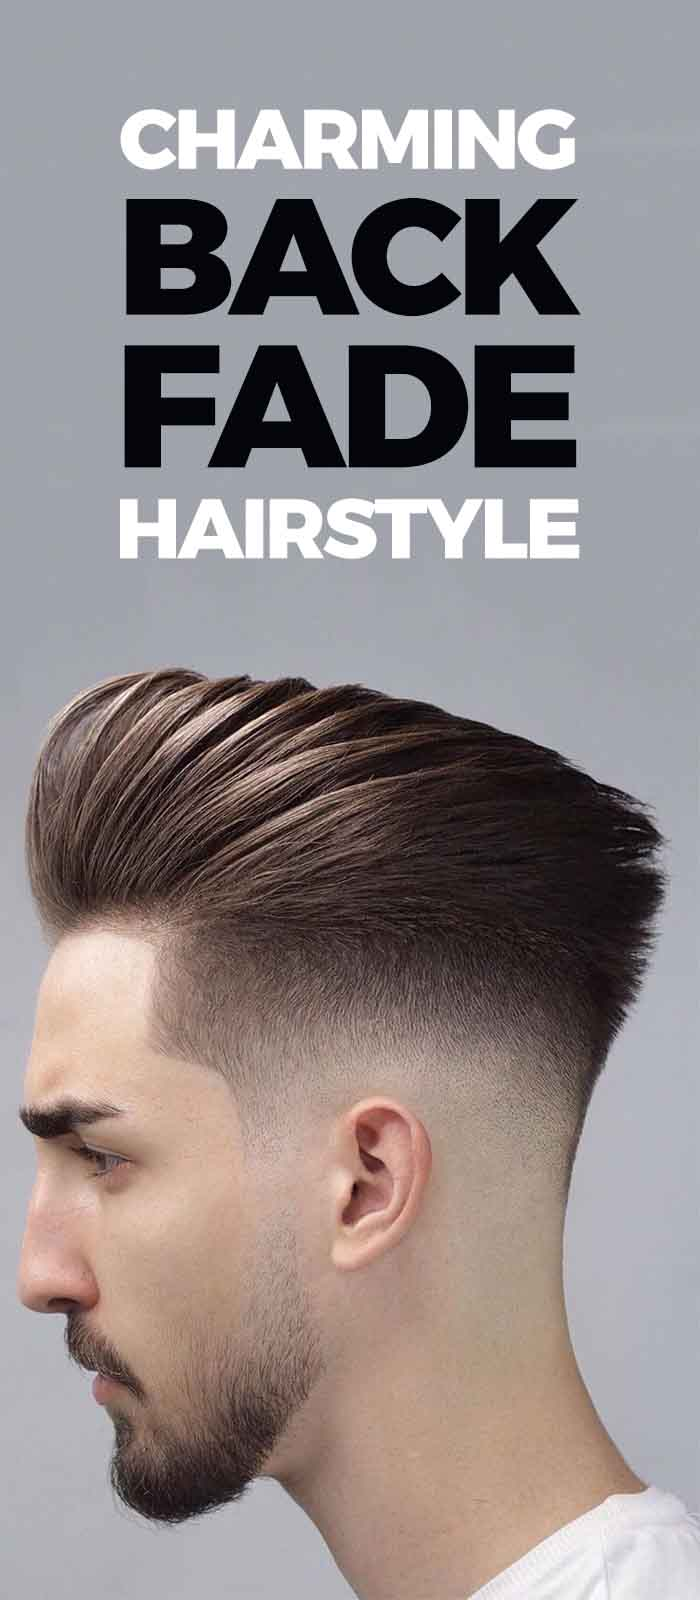 Back Fade Hairstyle 2019!